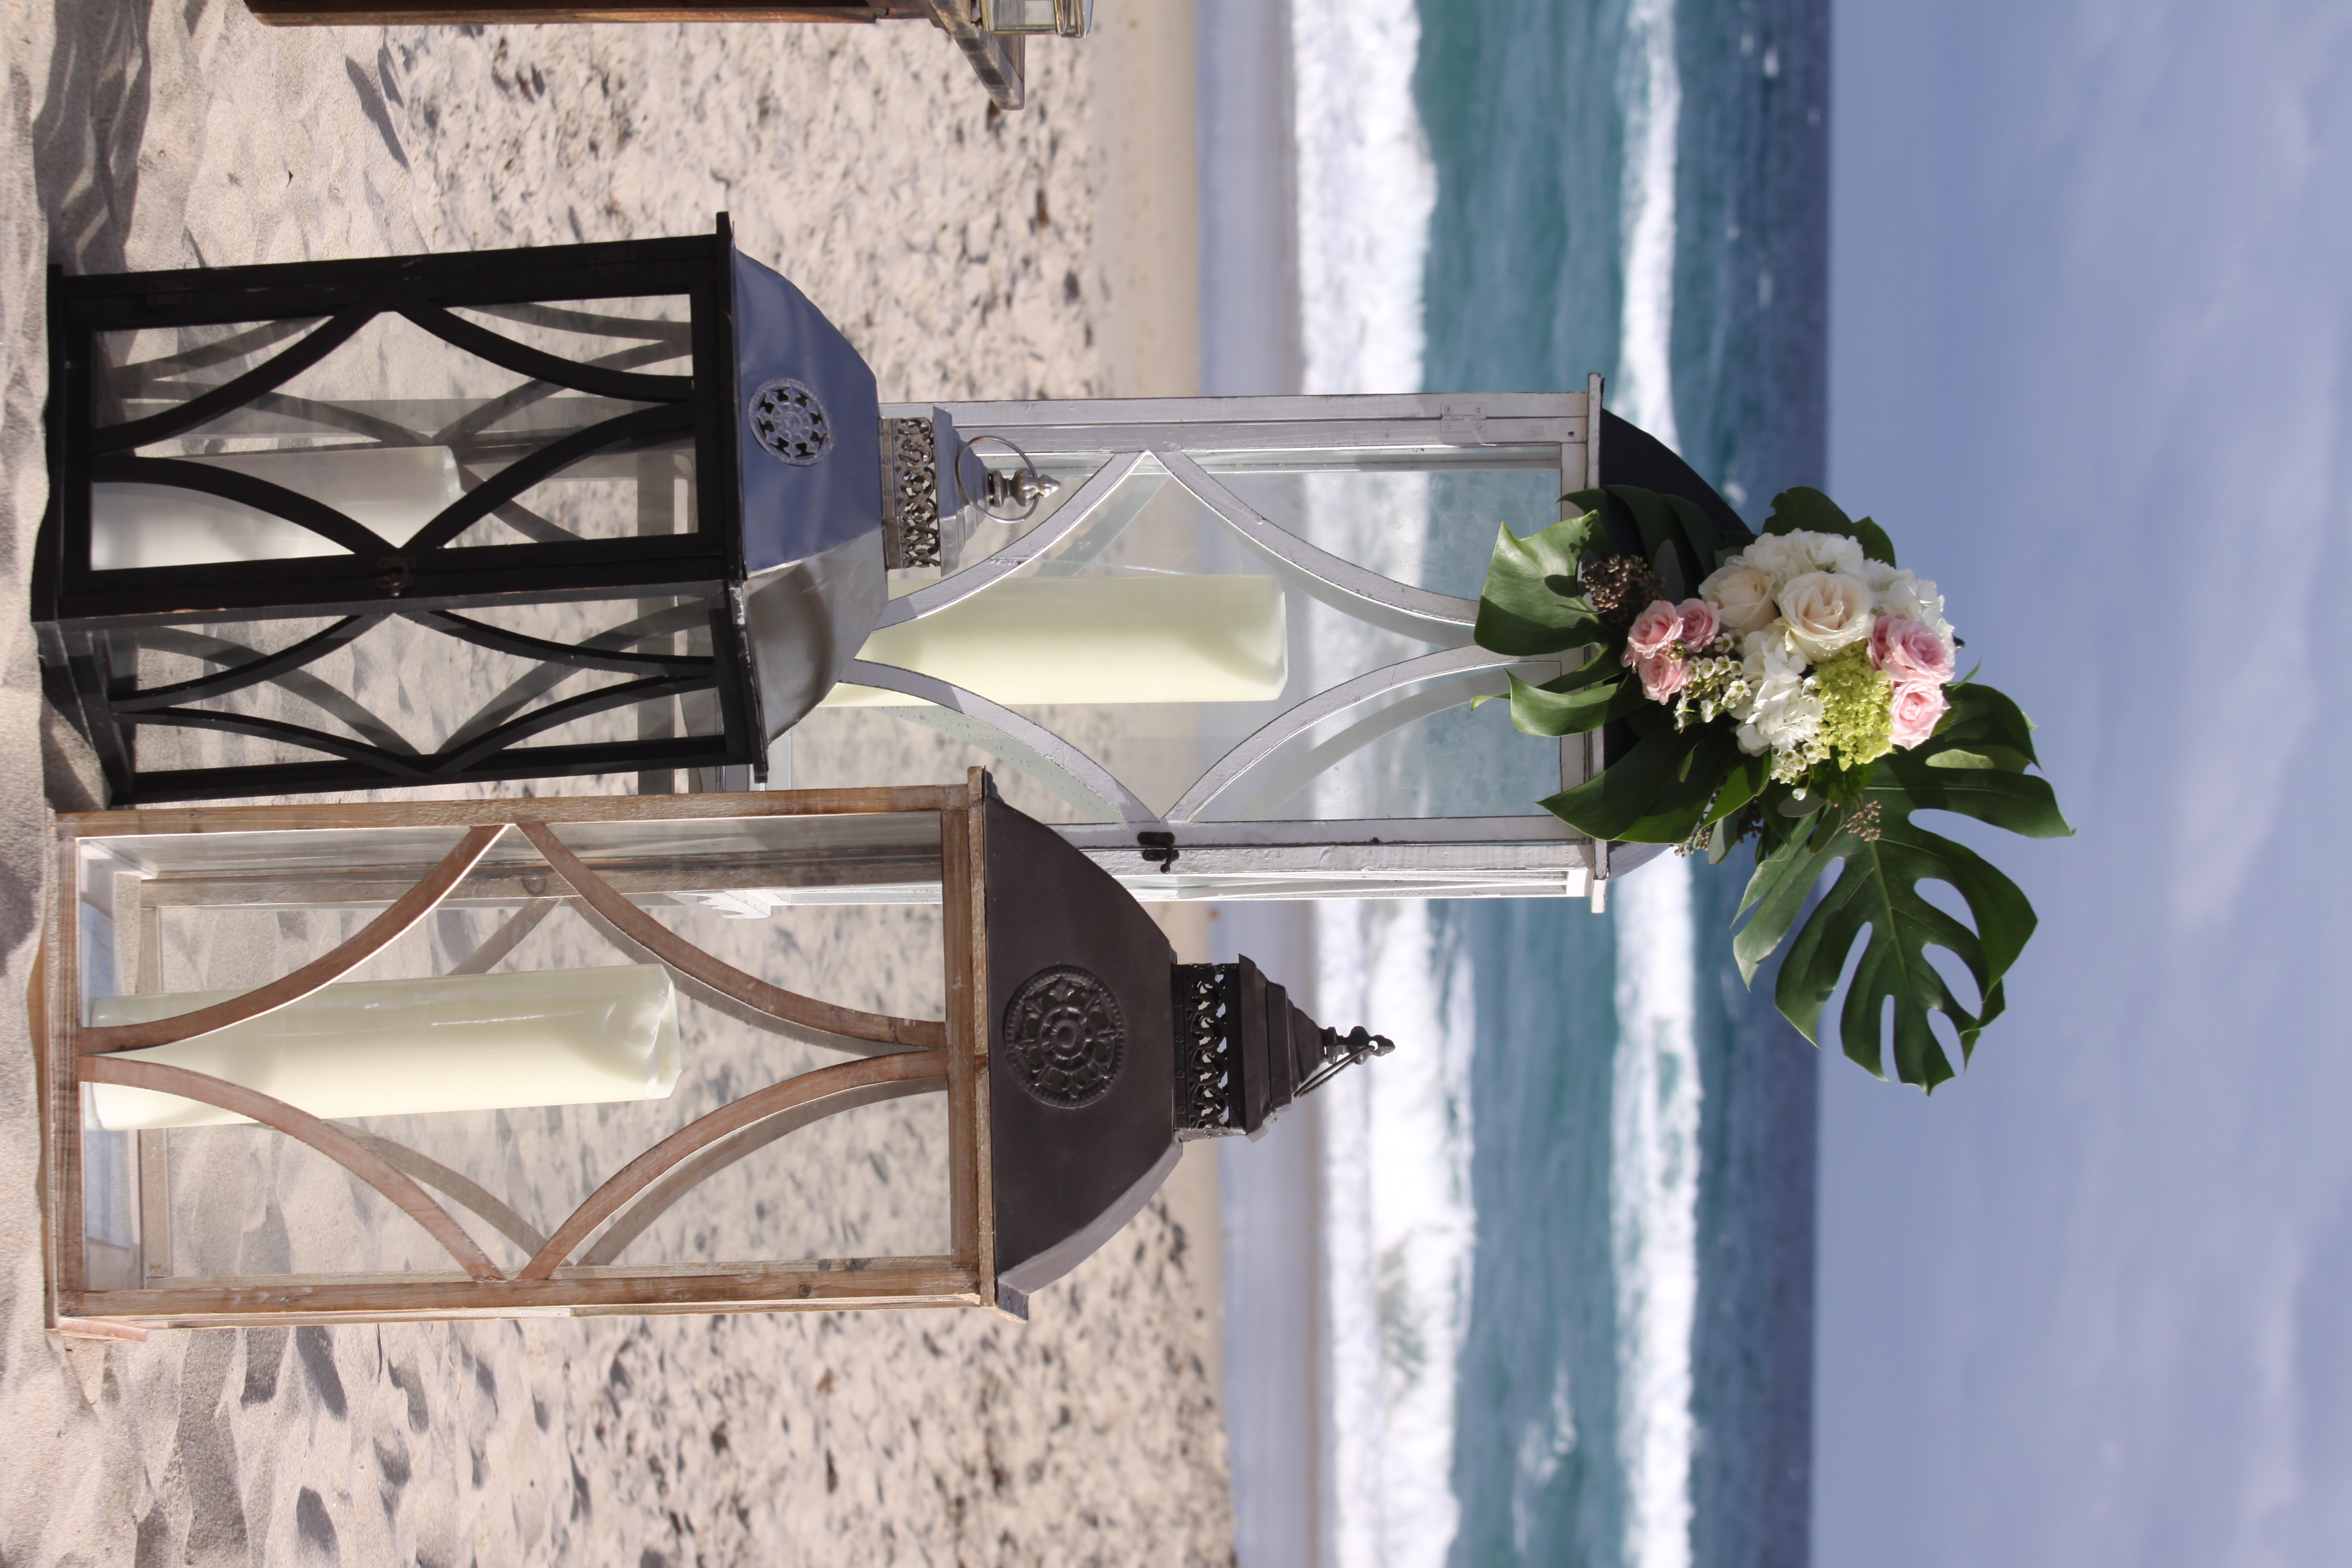 Giant Lantern Altar with Florals